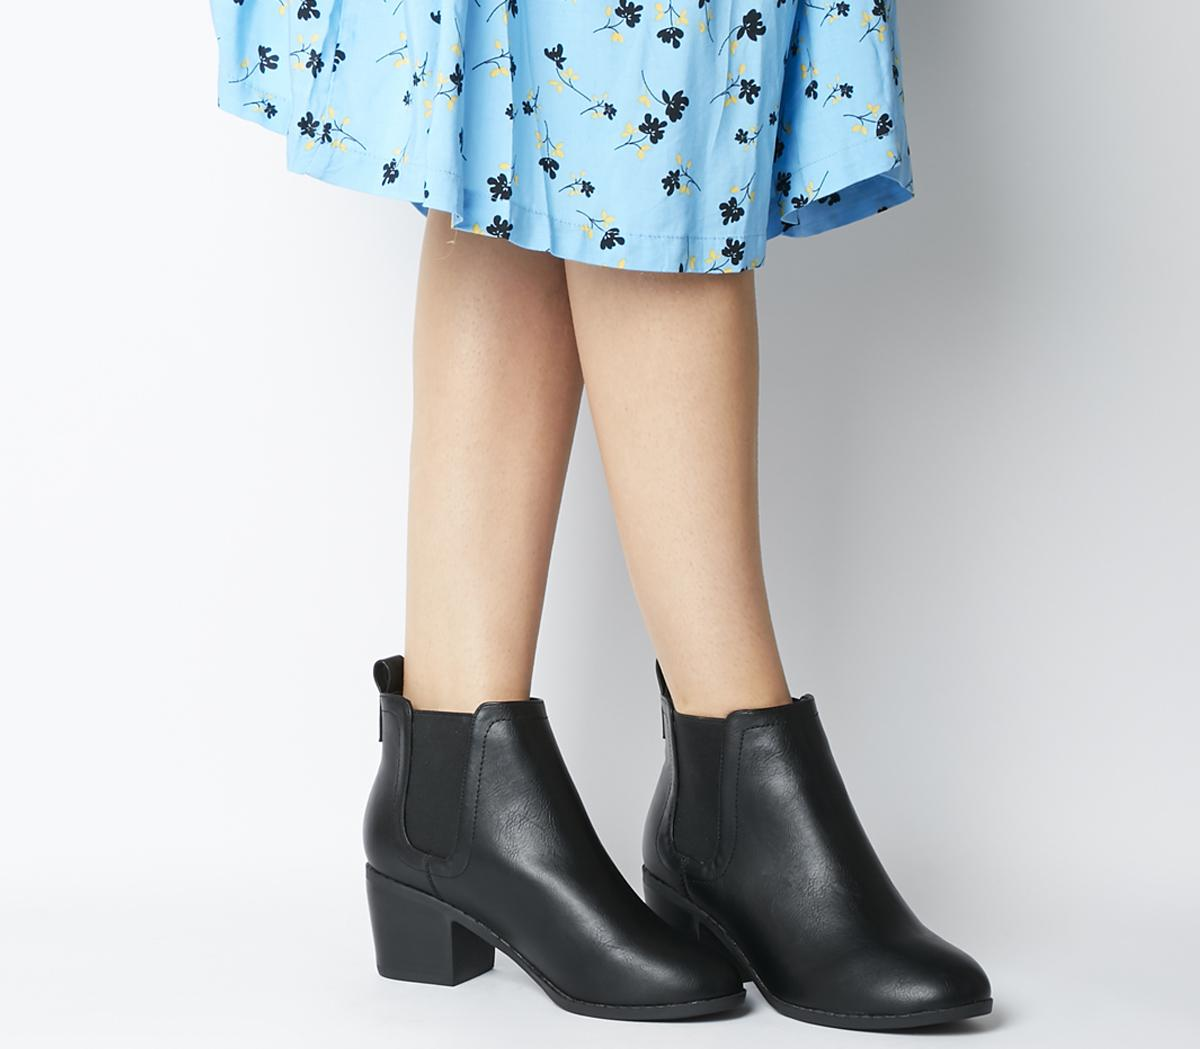 Anomoly Casual Chelsea Boots